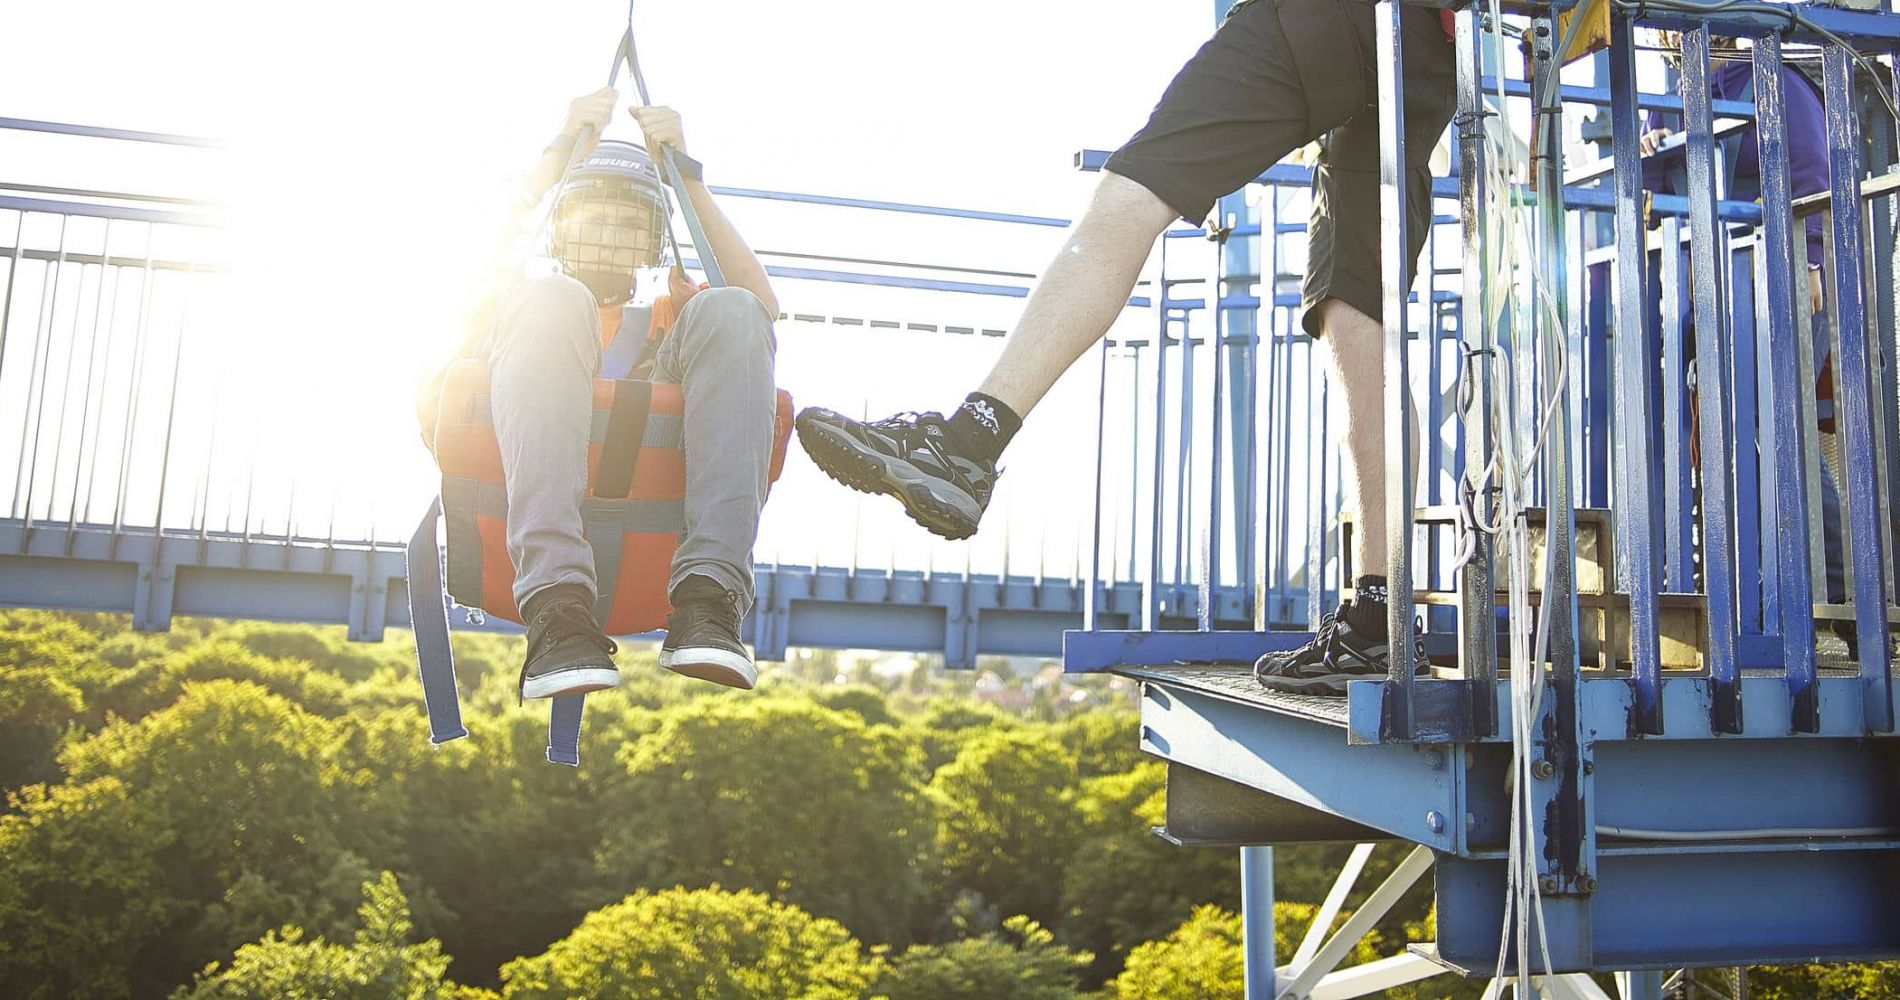 Free Fall Experience in Tivoli Park in Denmark for Two